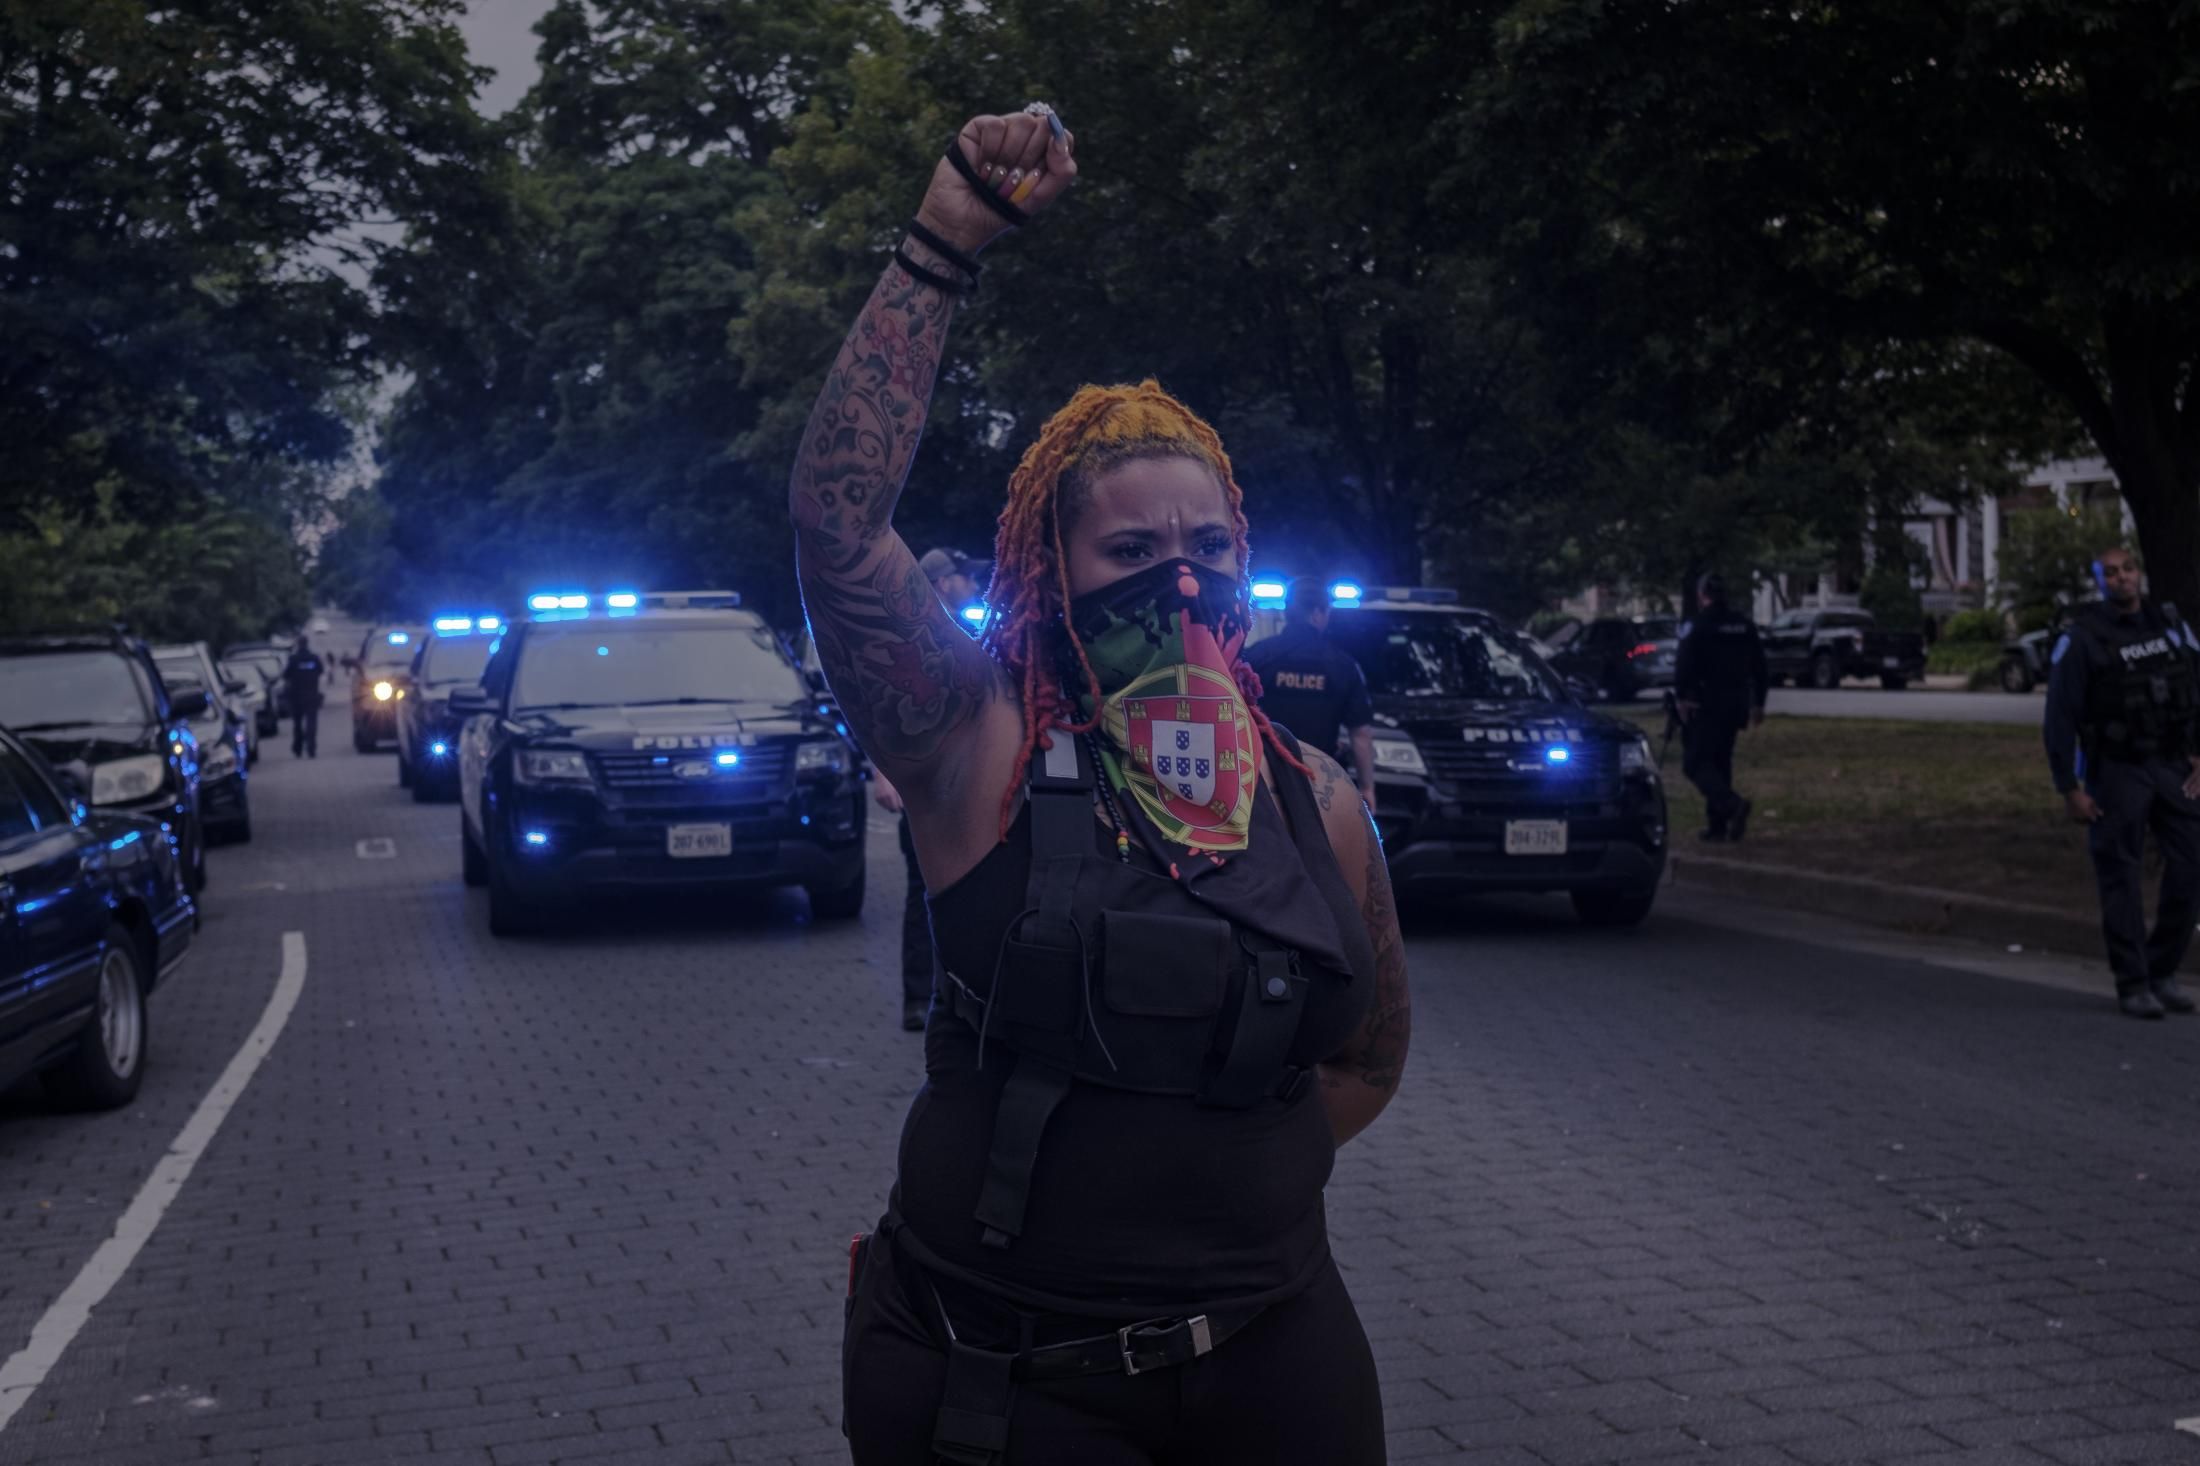 """RICHMOND, VA - June 20, 2020: Richmond police arrive heavily-armed at the Robert E. Lee memorial and require the participants to disperse the area. To celebrate the """"Juneteenth,"""" Richmond residents gather to honor those who have been killed by police officers and to protest police brutality on June 21, 2020 at Monument Avenue. The monument has been claimed by the community and has become a healing space where parents take photos with their children, play basketball and share a meal on the now proclaimed """"Marcus-David Petters Circle"""". The Robert E. Lee memorial has been renamed in honor of the young Marcus-David Petters, who was shot and killed by a Richmond police officer on May 14, 2018. Photo: Carlos Bernate for The New York Times."""